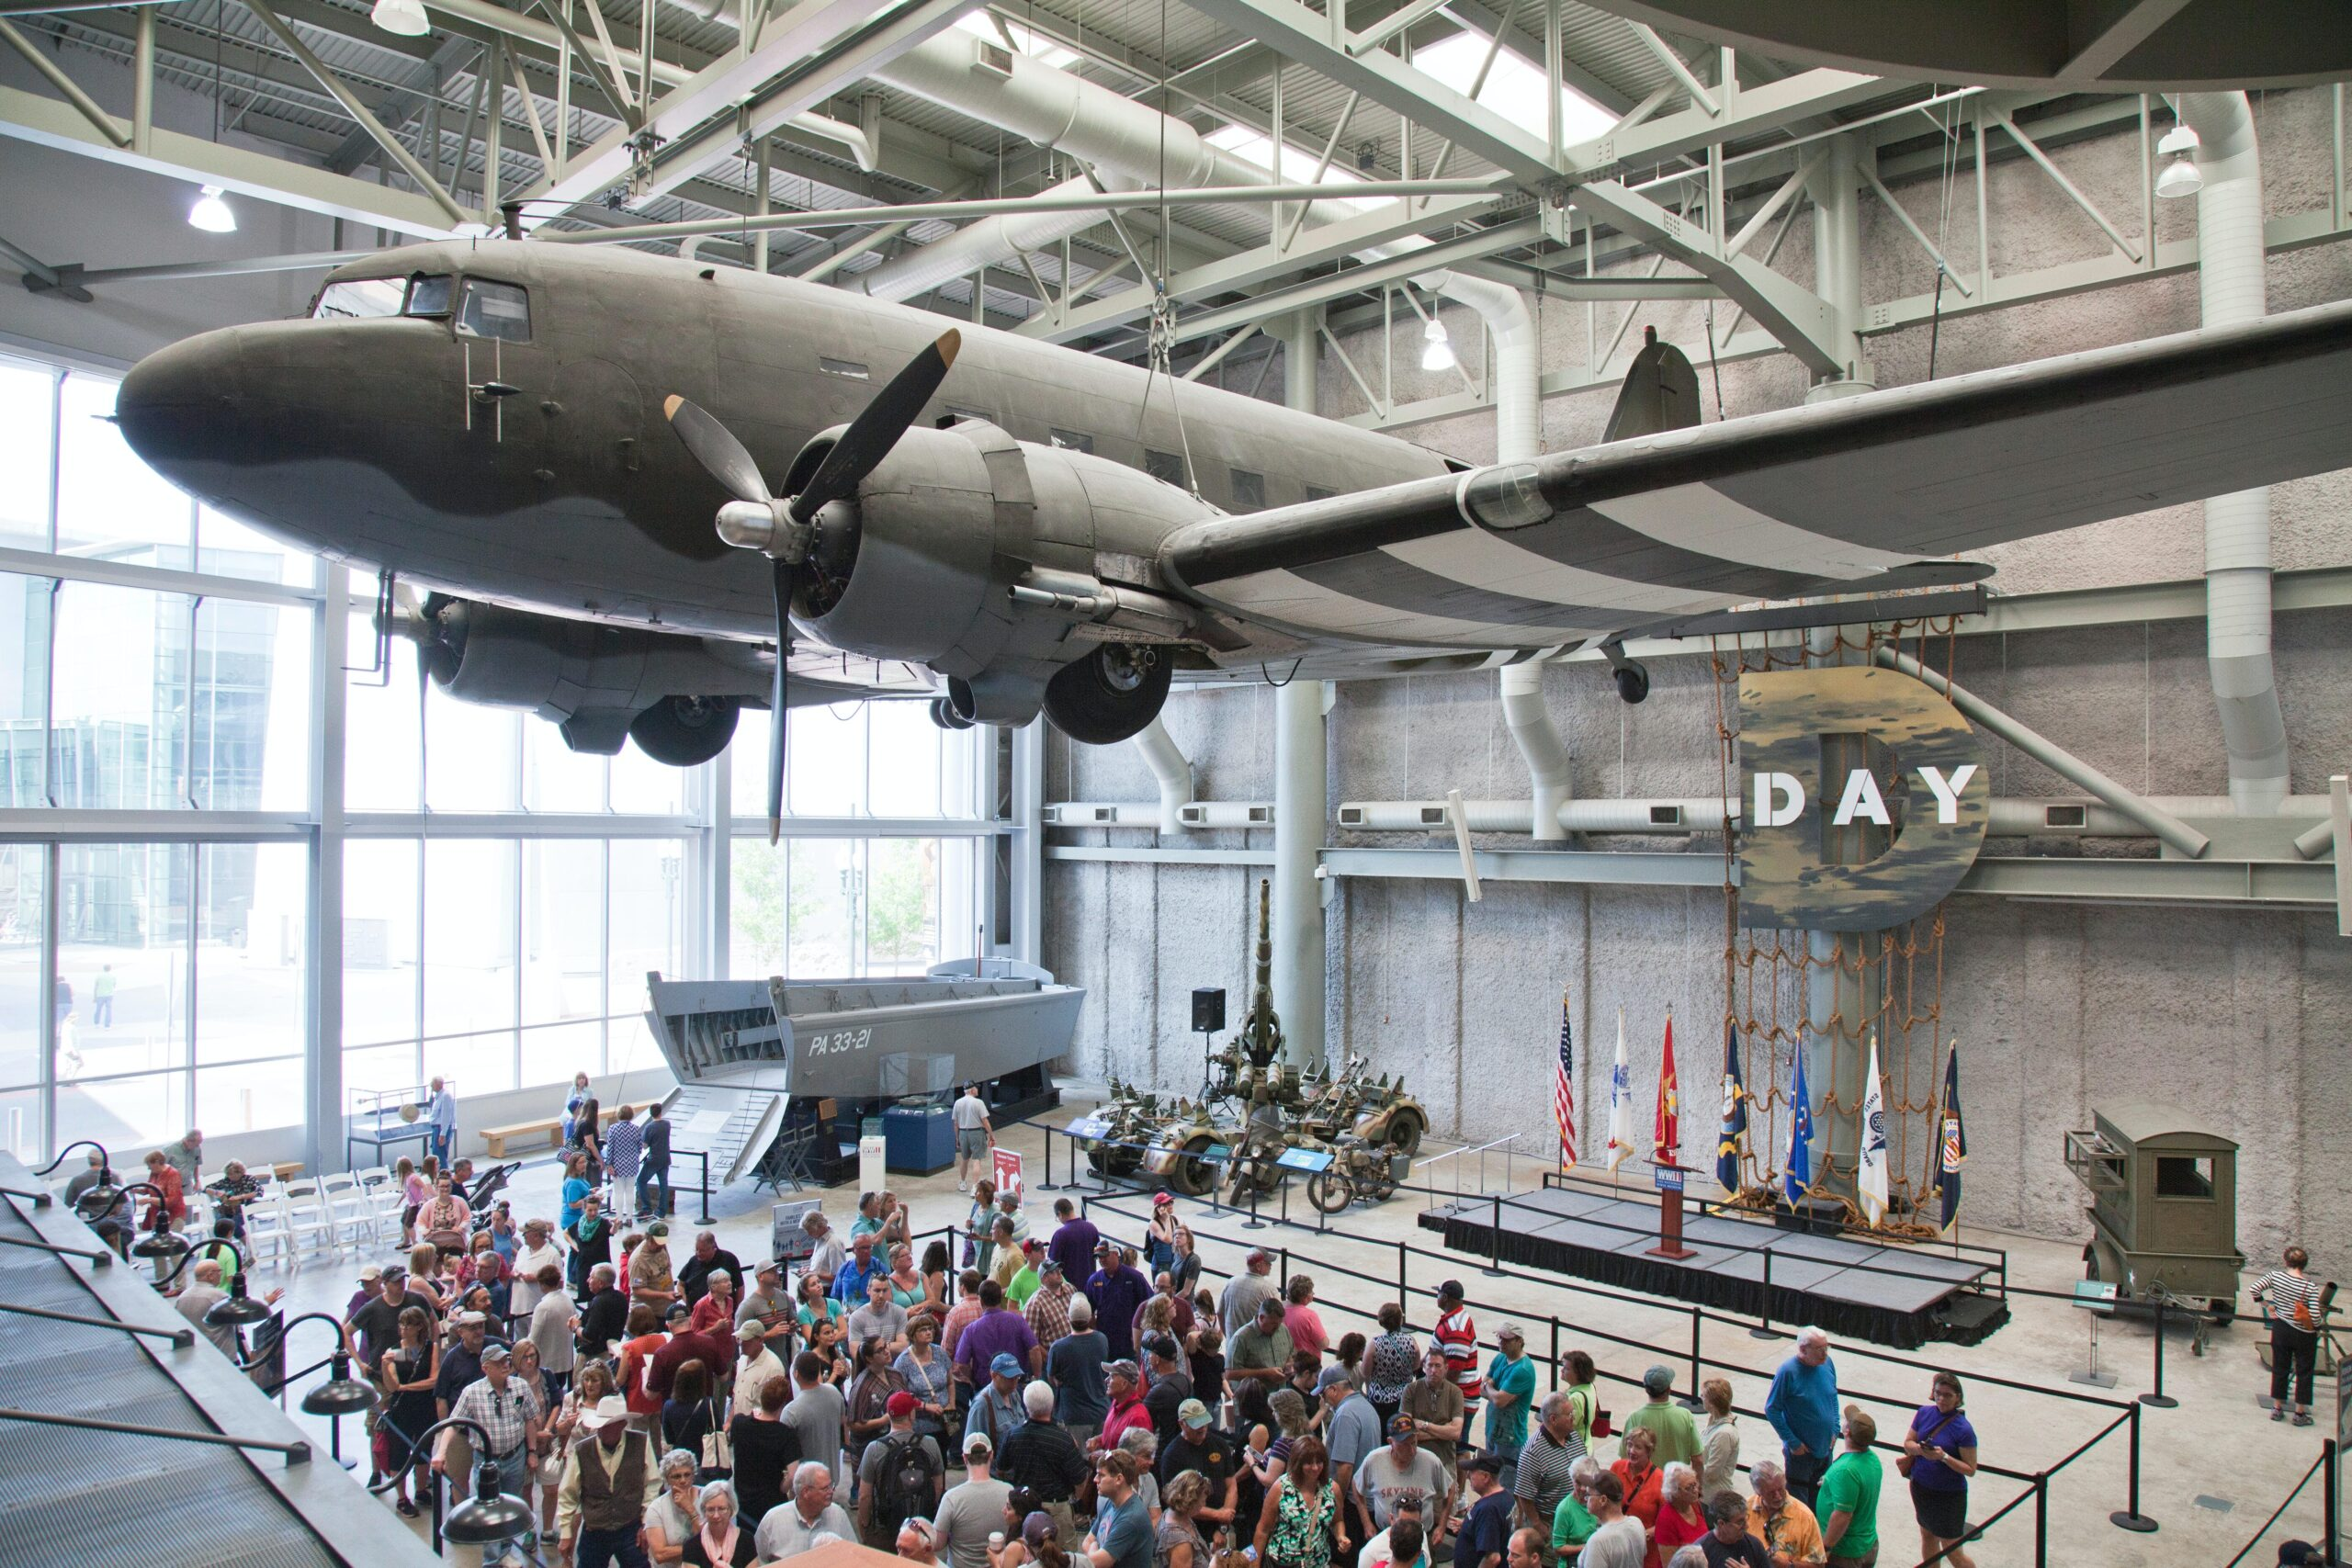 Louisiana Memorial Museum Atrium is the entry area for the The National World War II Museum, New Orleans, Louoisiana. Floor displays include the Higg